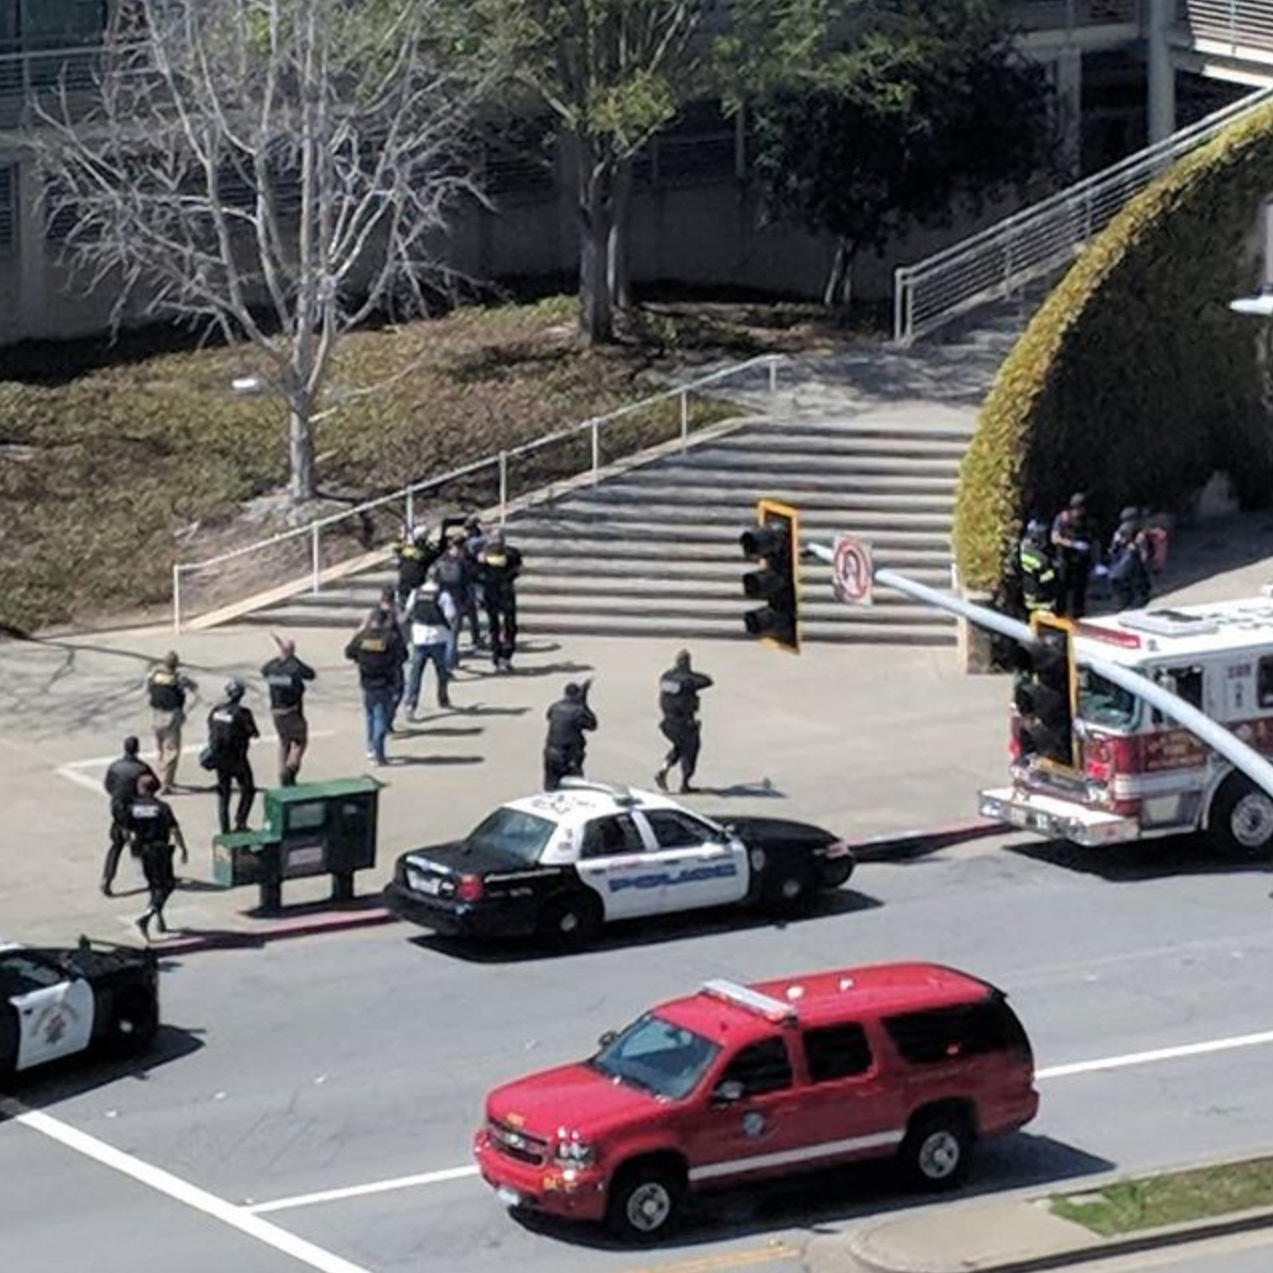 <div class='meta'><div class='origin-logo' data-origin='none'></div><span class='caption-text' data-credit='instagraemedm/Instagram'>Police at YouTube headquarters following a shooting on the campus at San Bruno.</span></div>